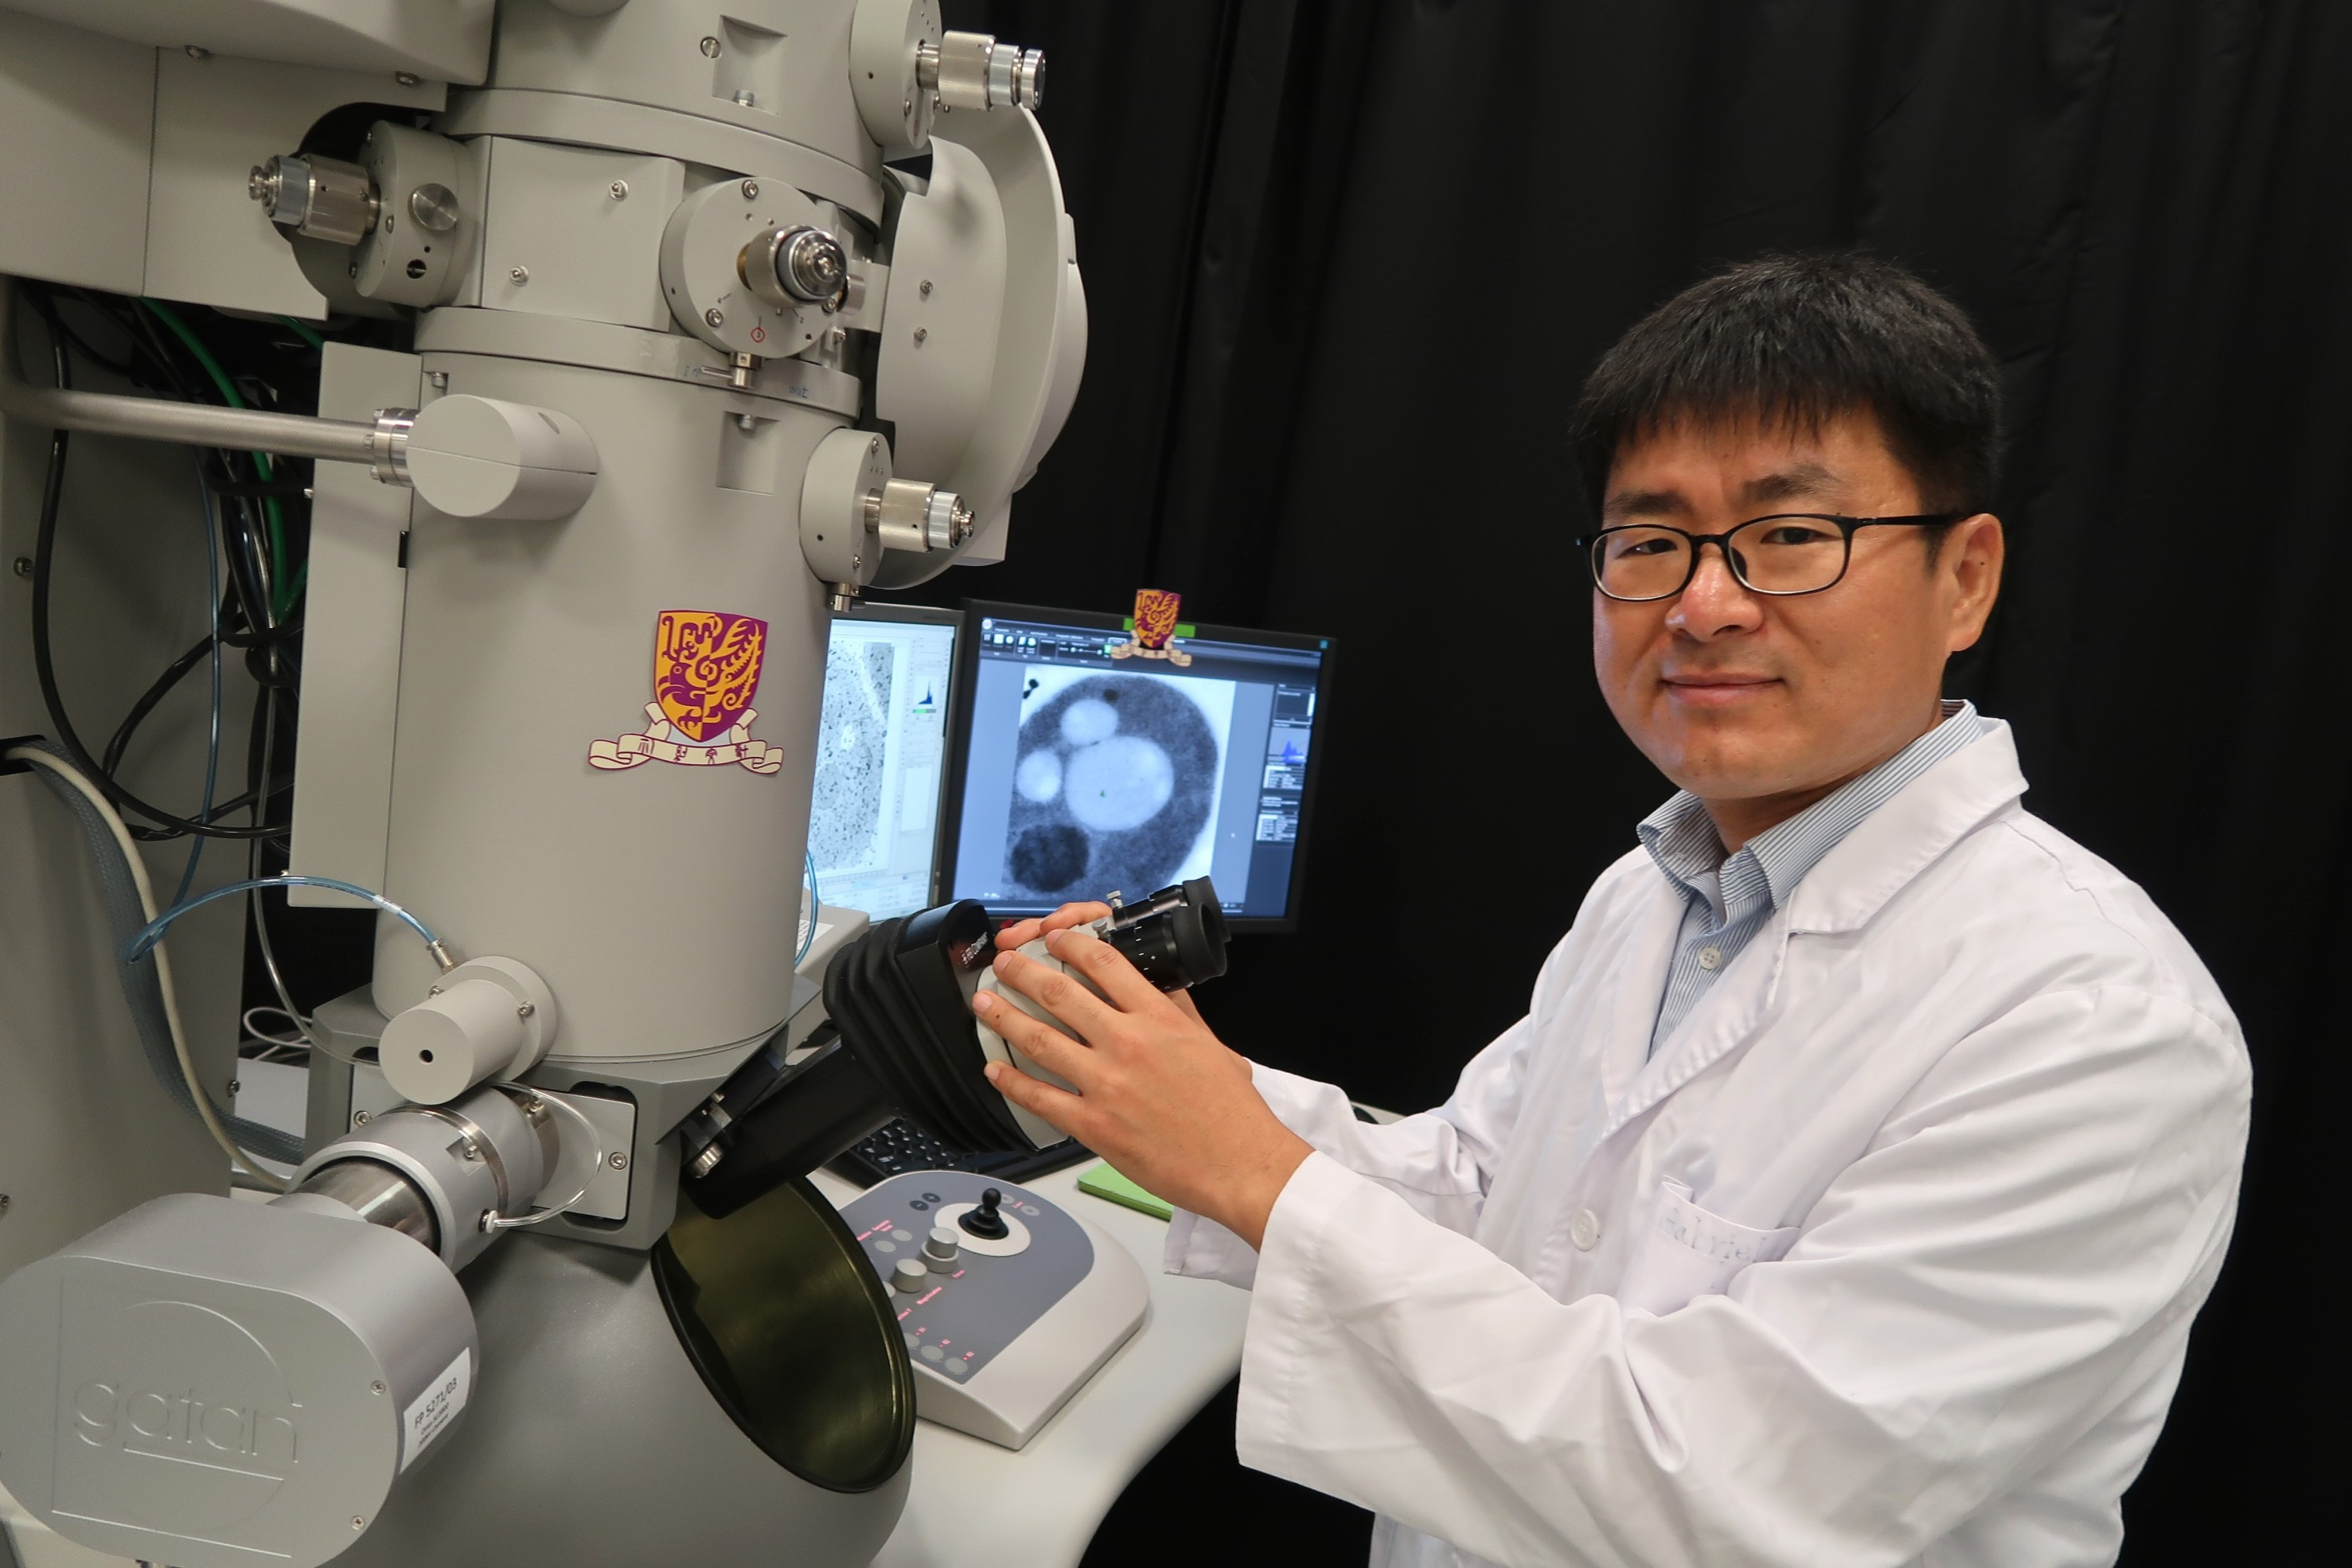 Prof. Byung-Ho Kang reveals the self-degradation of sperm mitochondria in C. elegans using electron tomography. The results are published in Science.